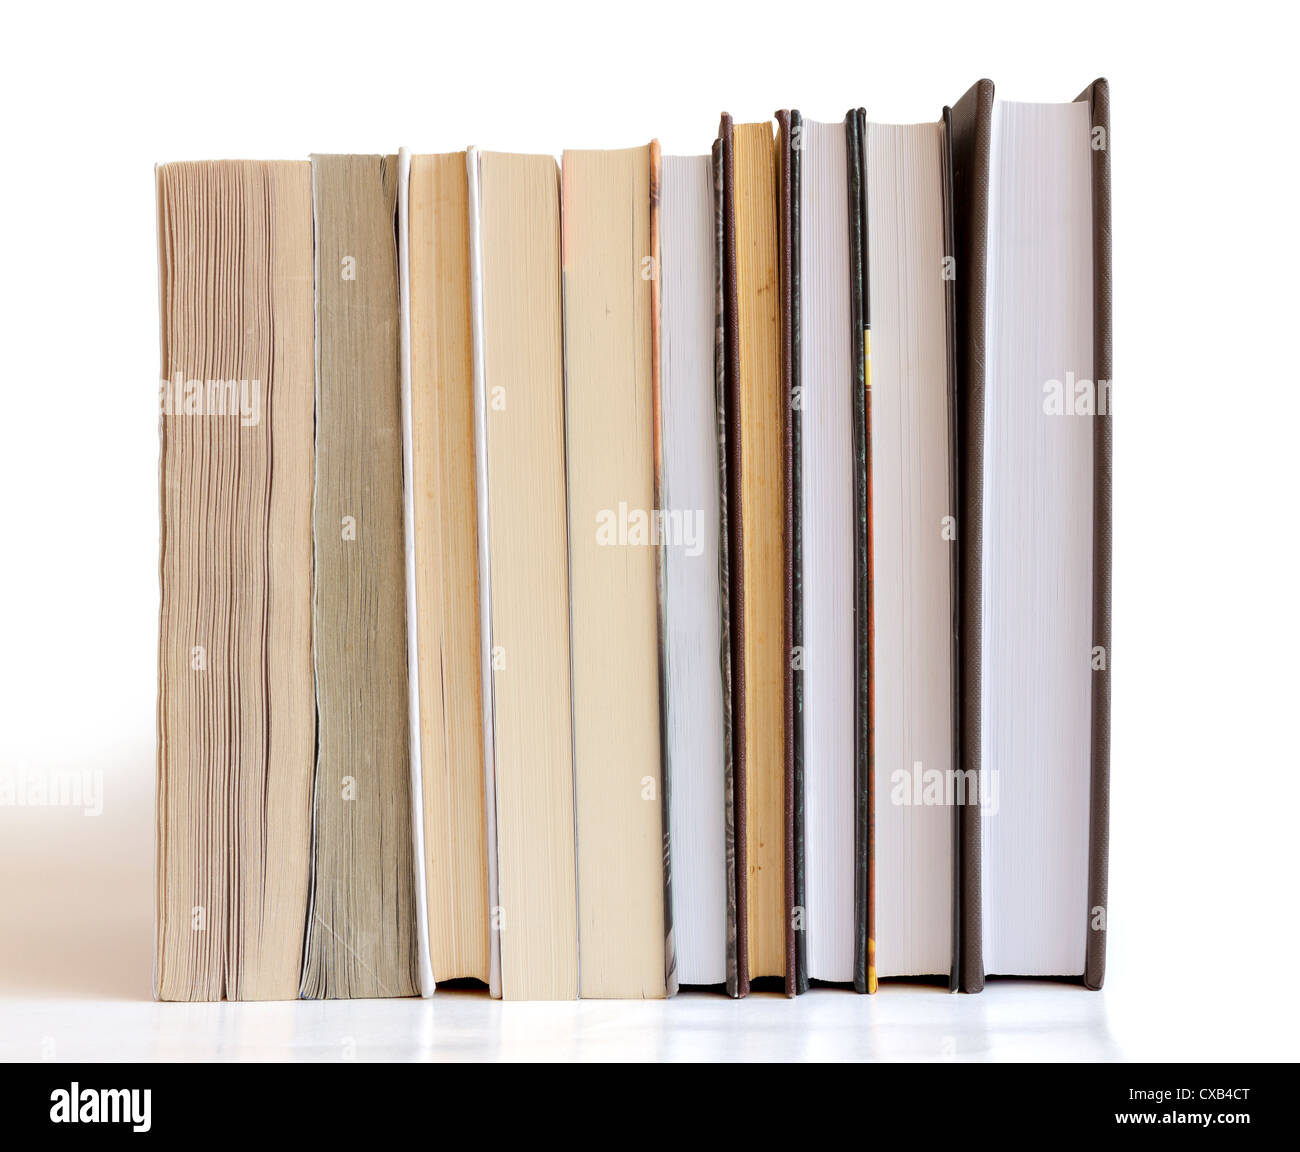 Books in a row isolated on white background - Stock Image